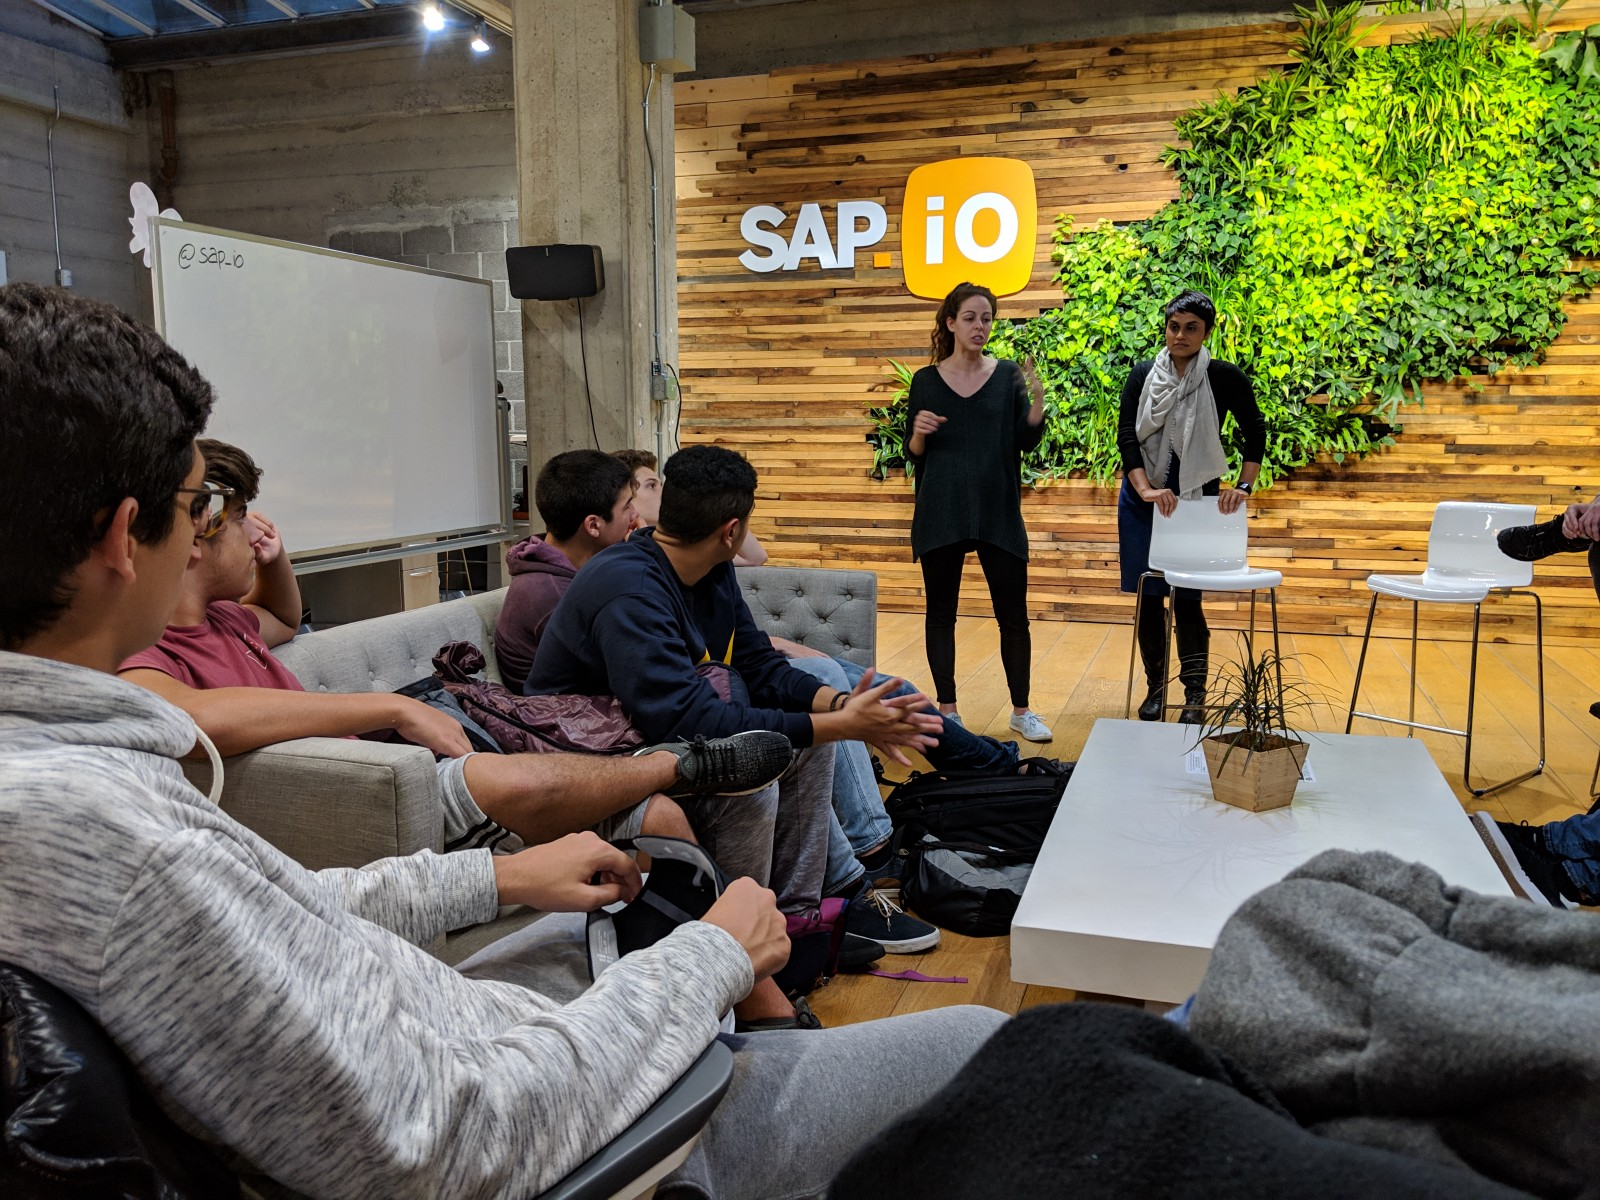 Shuchi Rana, head of the SAP San Francisco accelerator, explaining why large companies like SAP need to reinvent themselves by partnering with entrepreneurs and startups